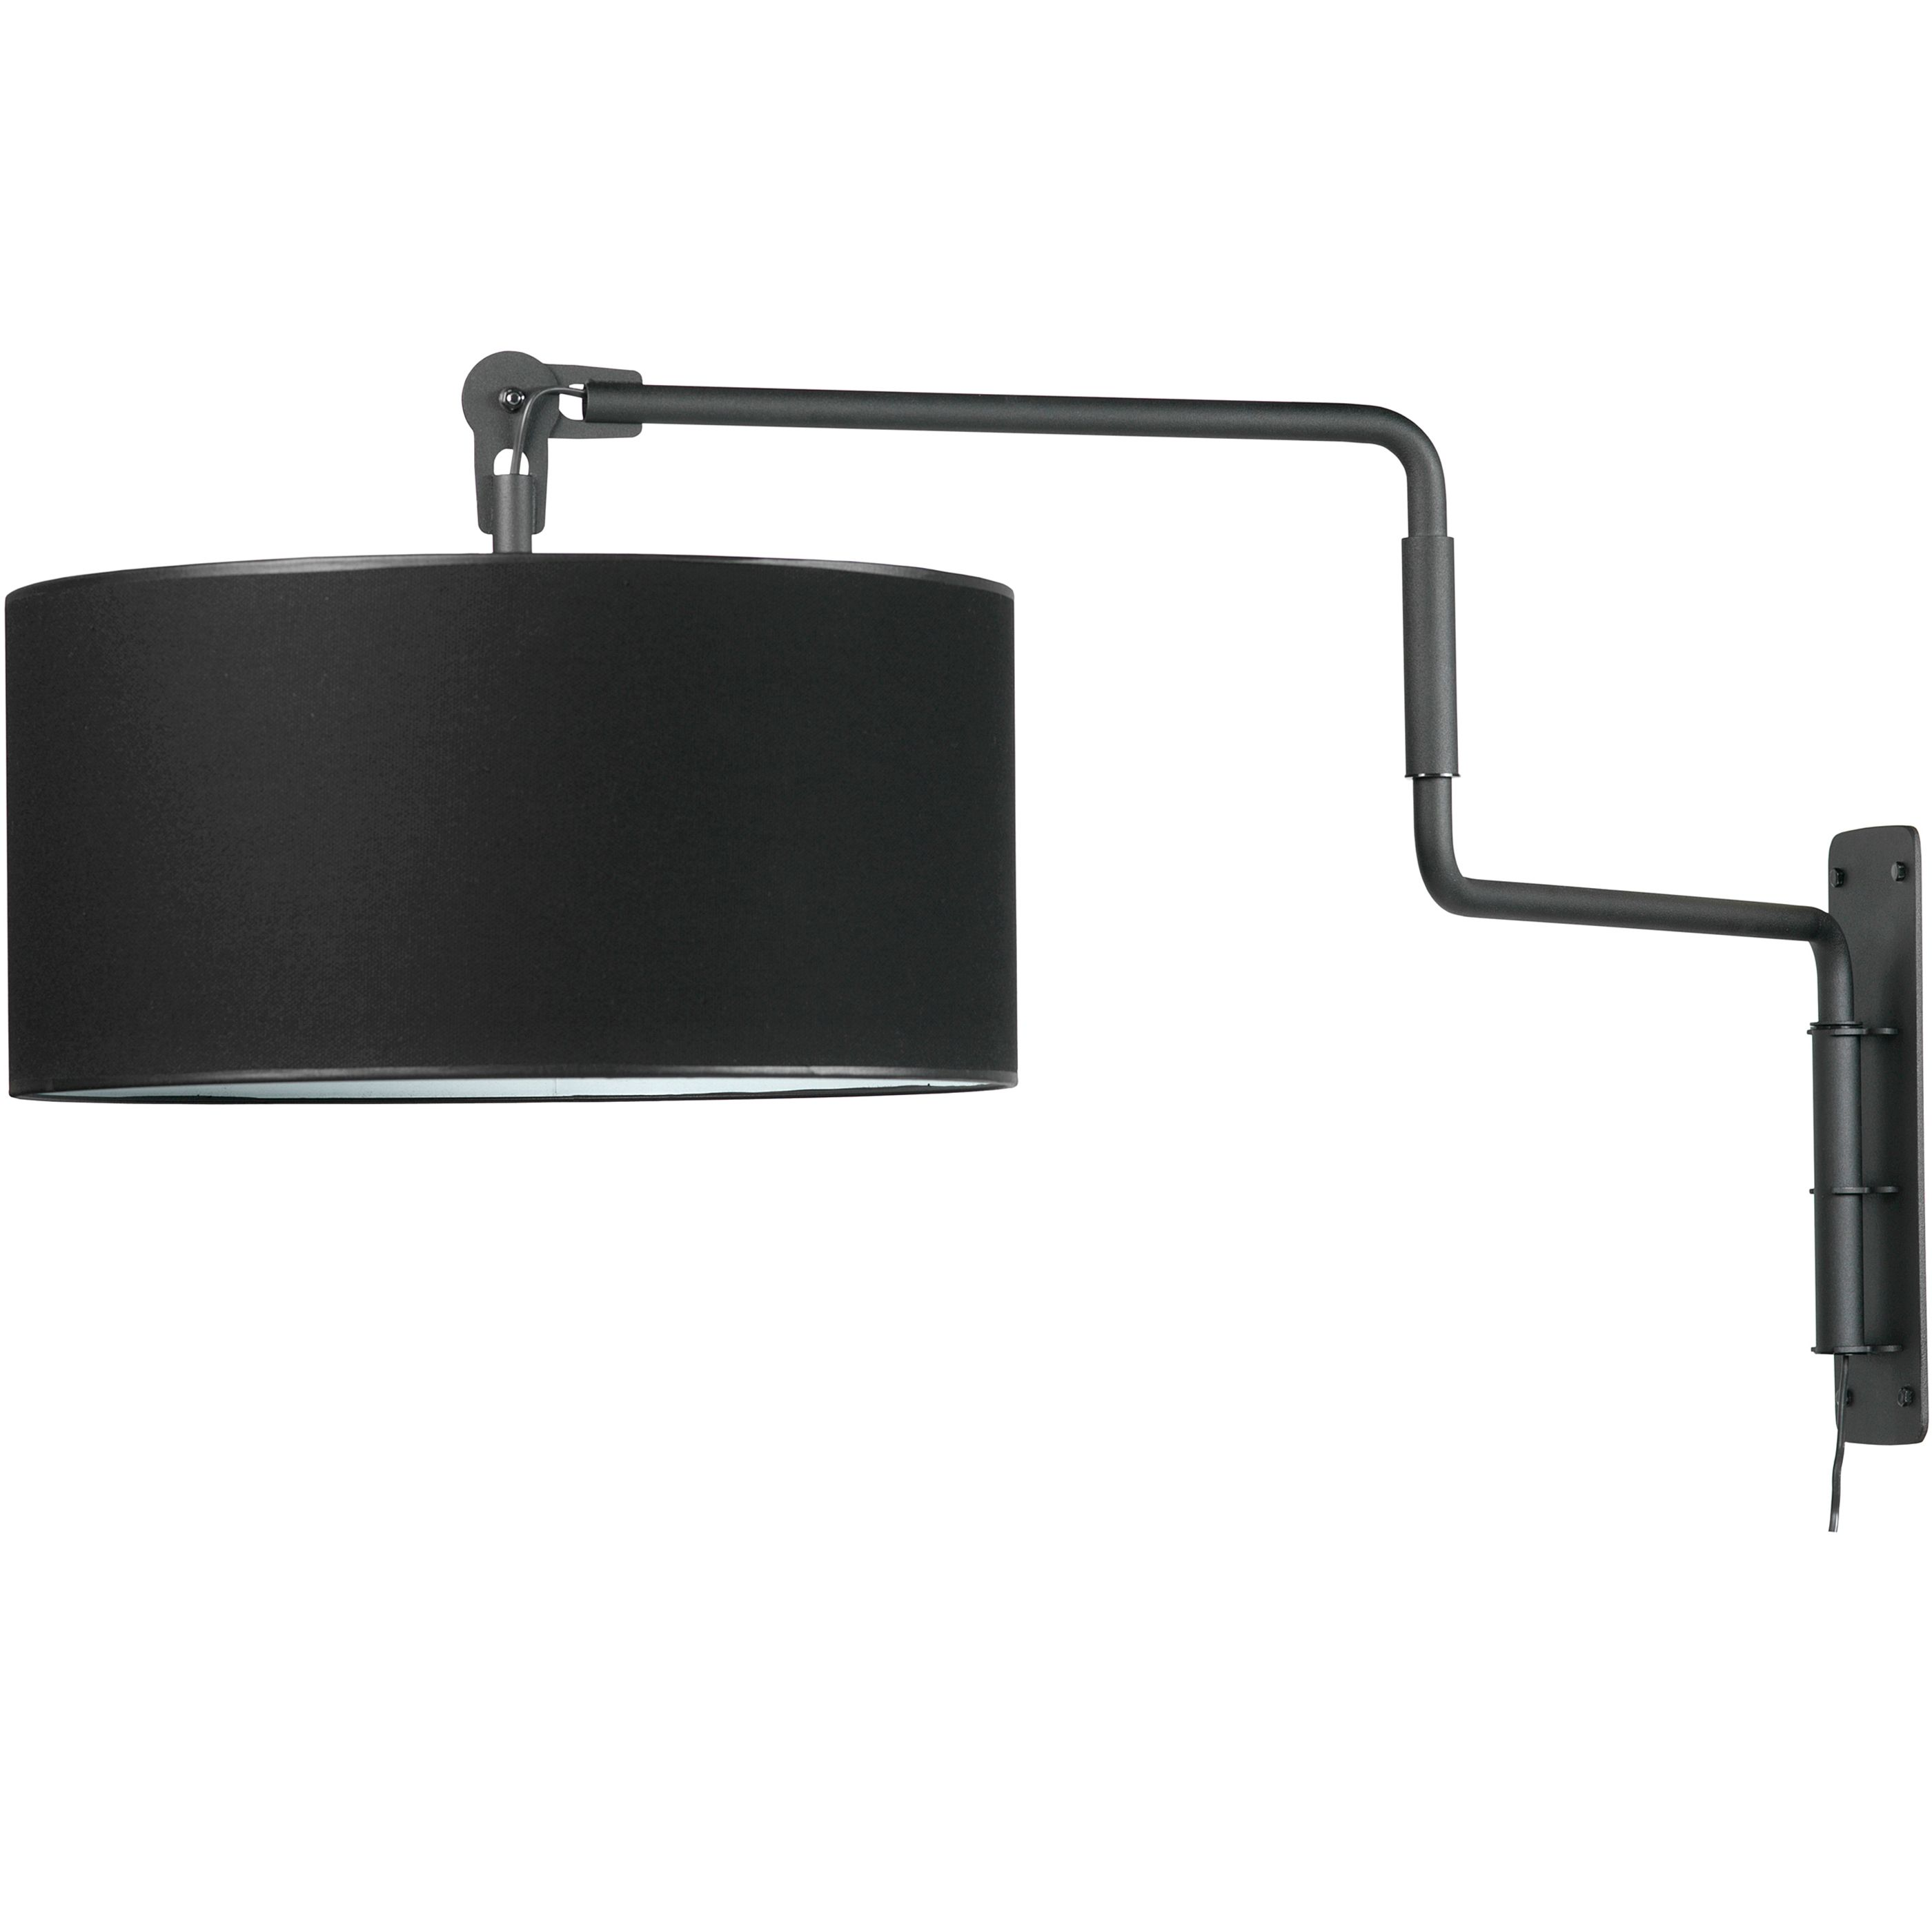 Functionals Swivel wandlamp